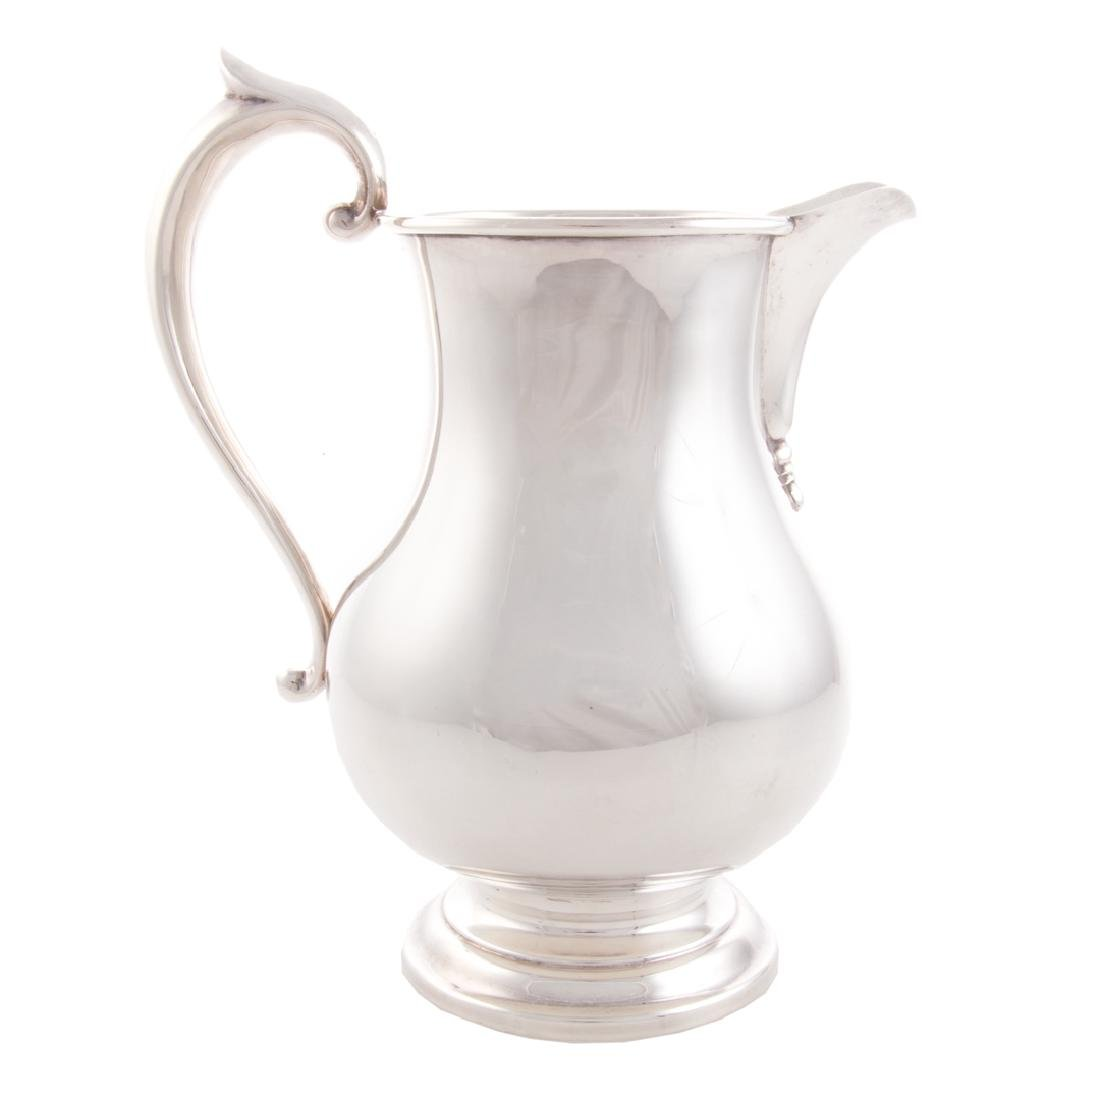 American sterling baluster-form pitcher